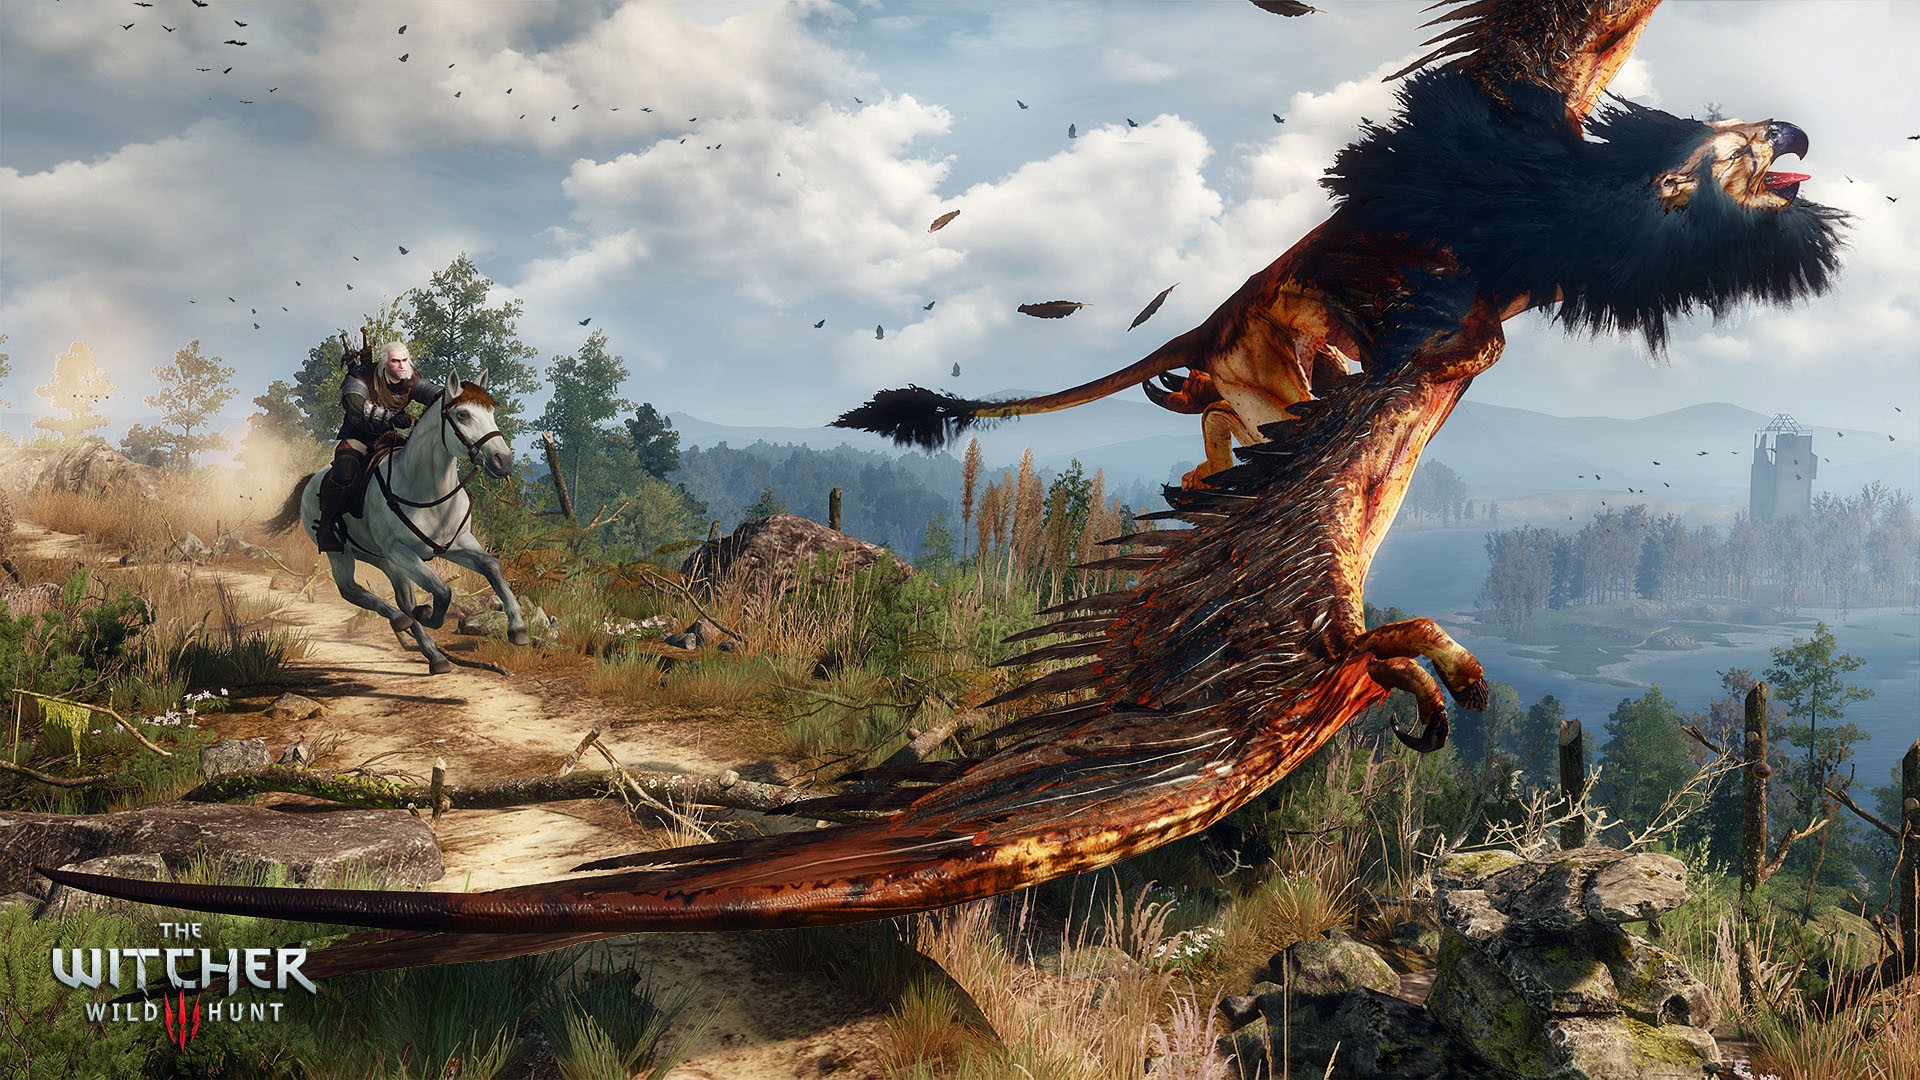 witcher-3-gameplay-screenshot-horse-vaulting-pc-xbox-one-ps4